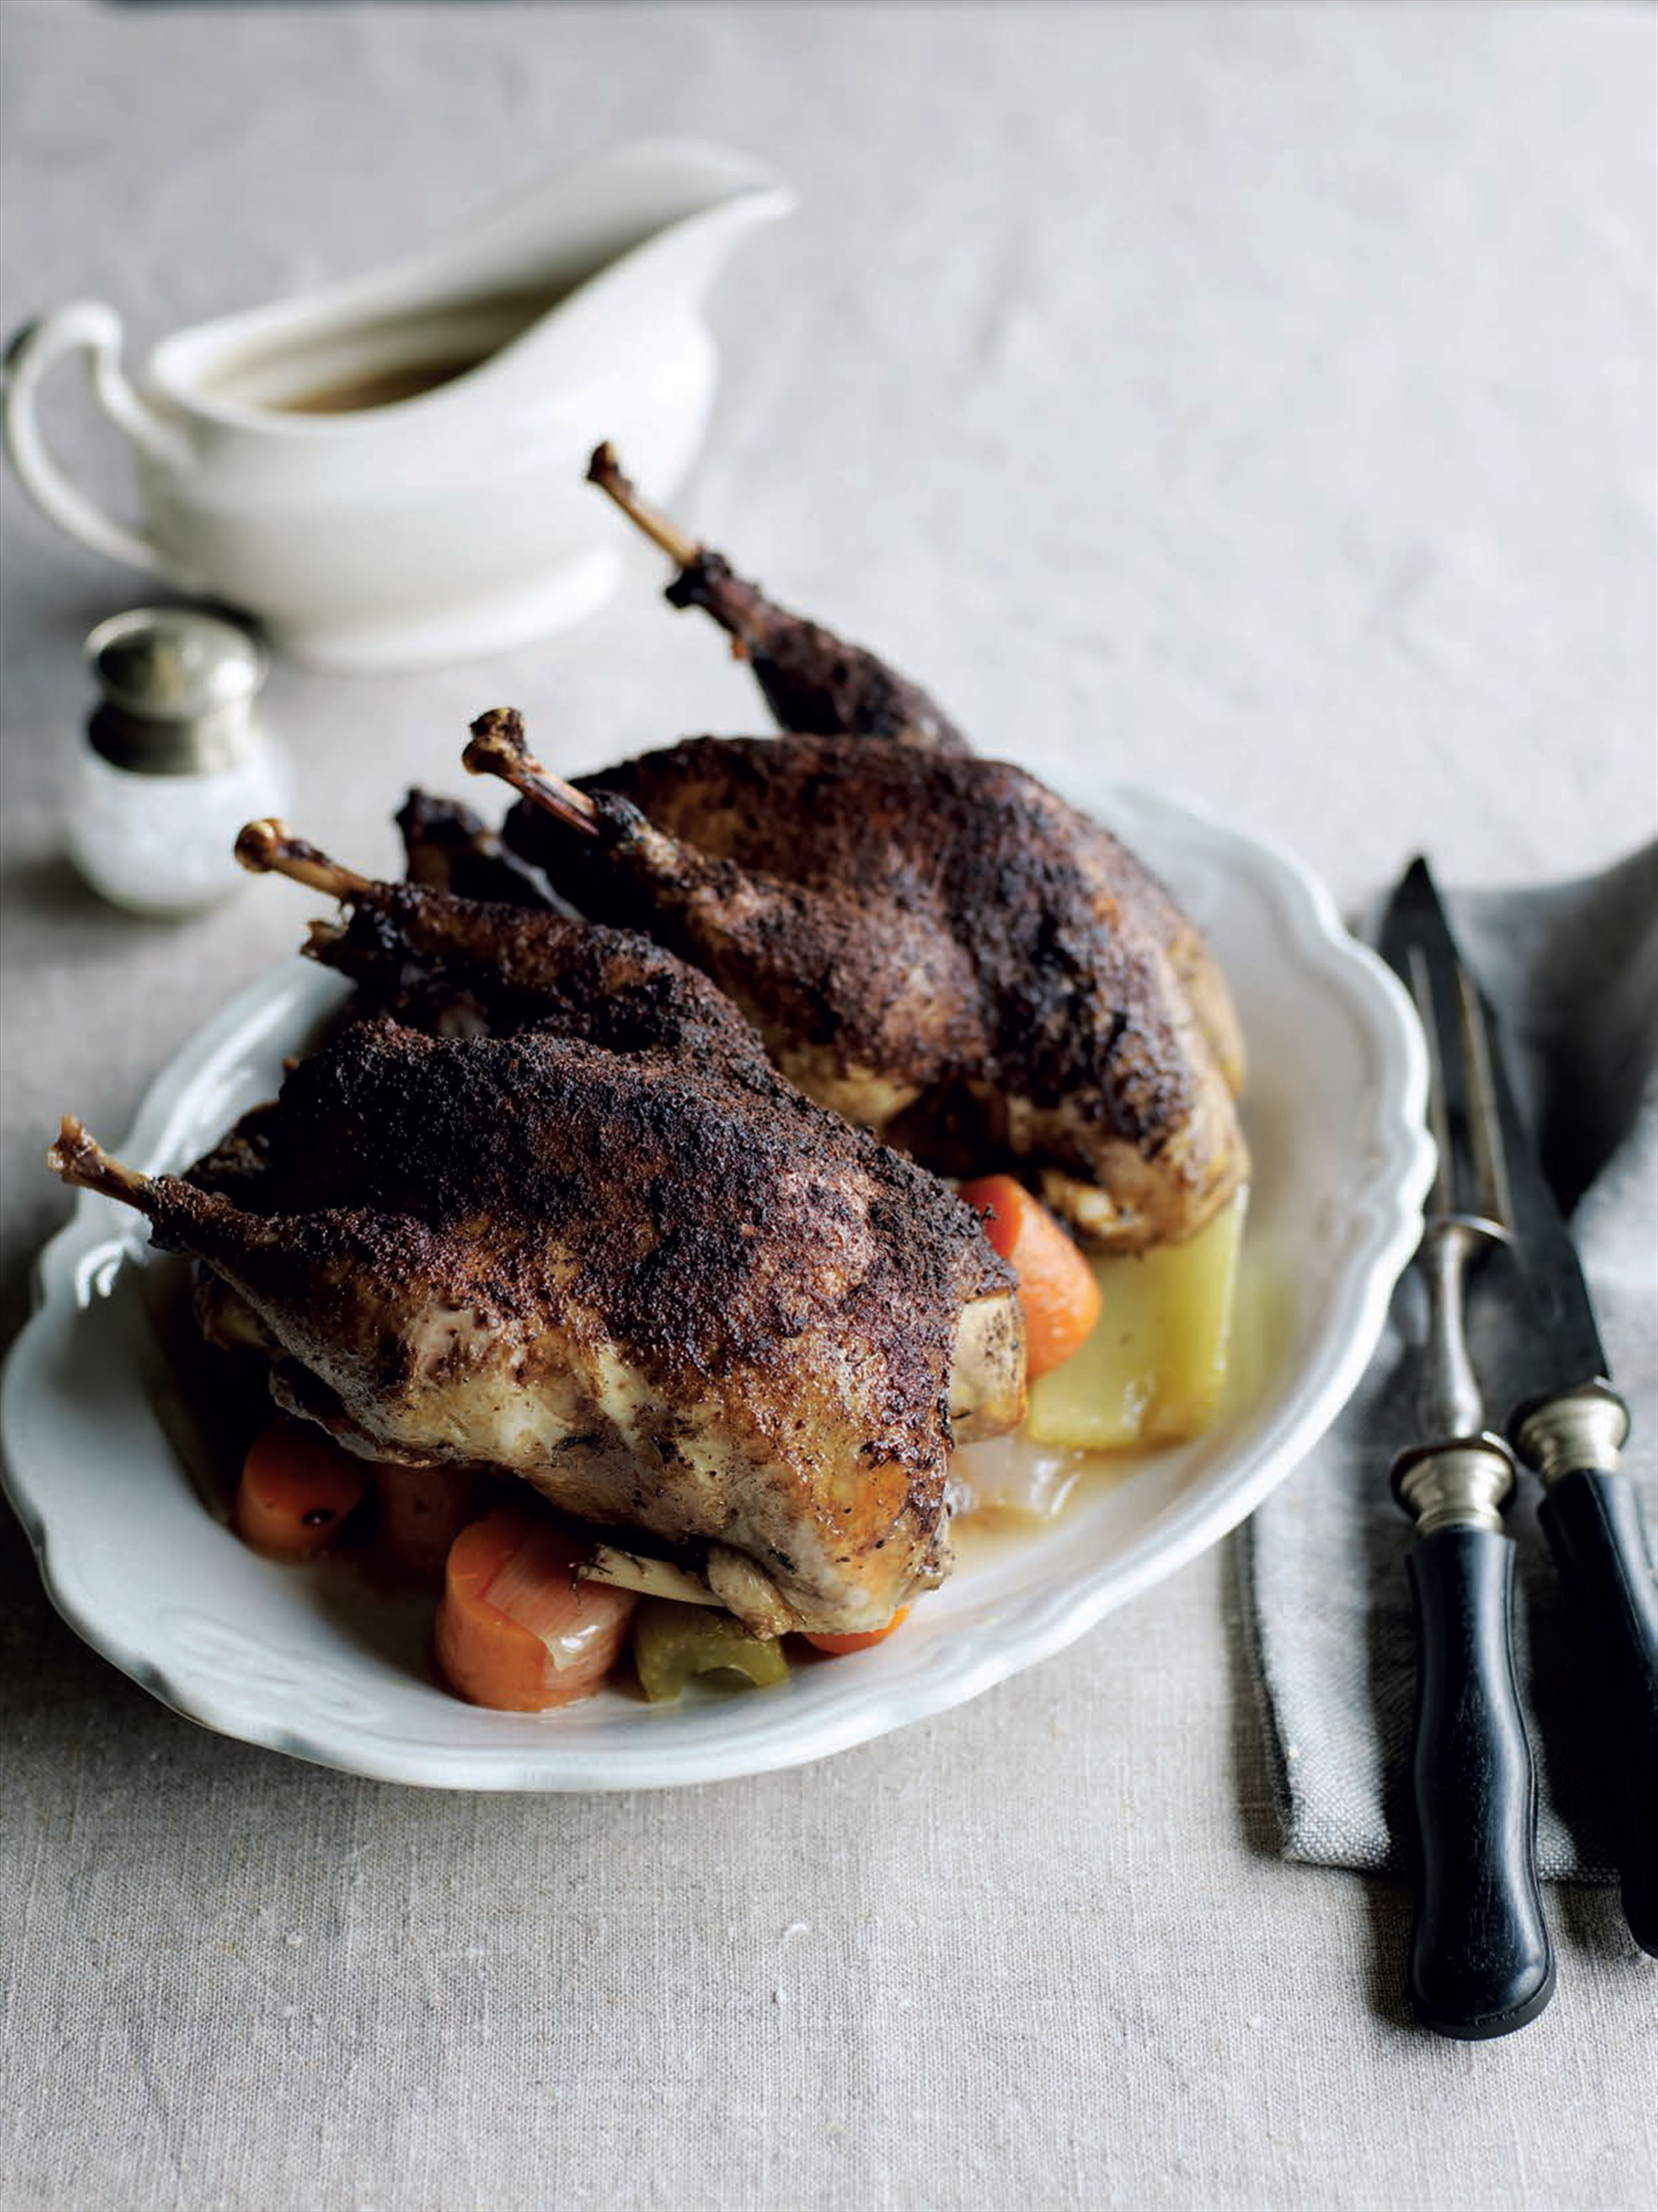 Braised pheasant with cinnamon and star anise